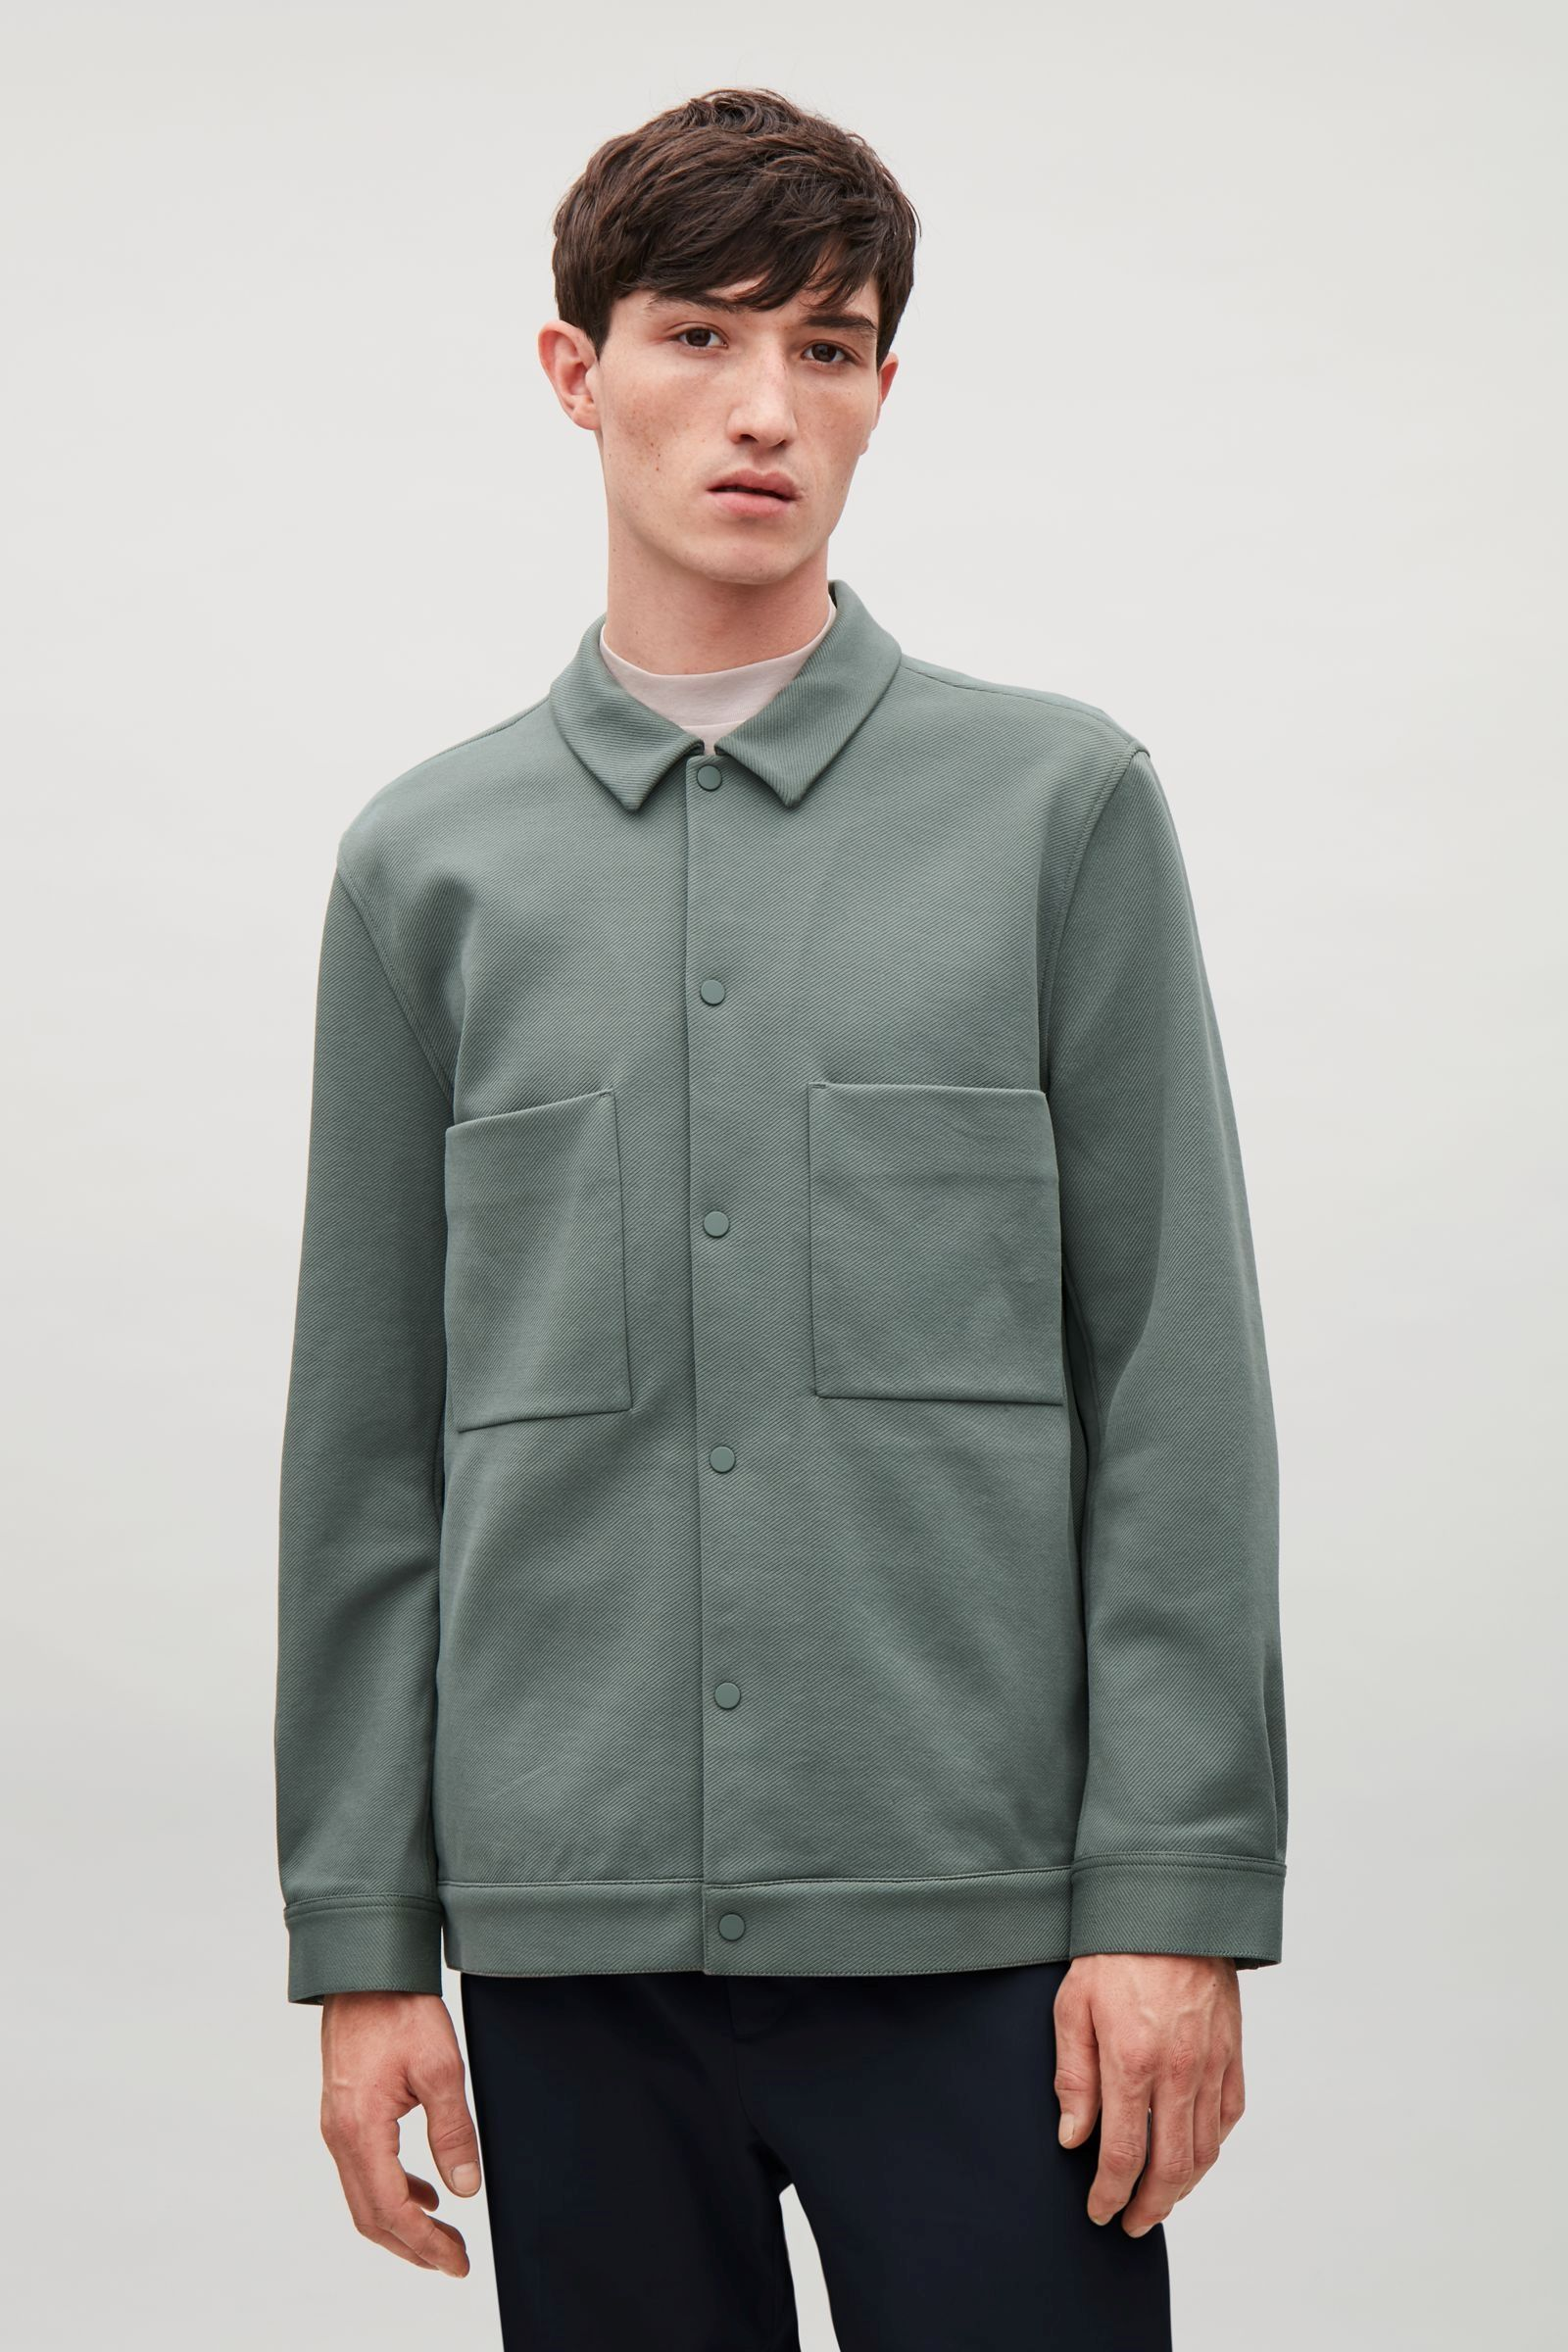 COS image 8 of Twill shirt jacket in Mint